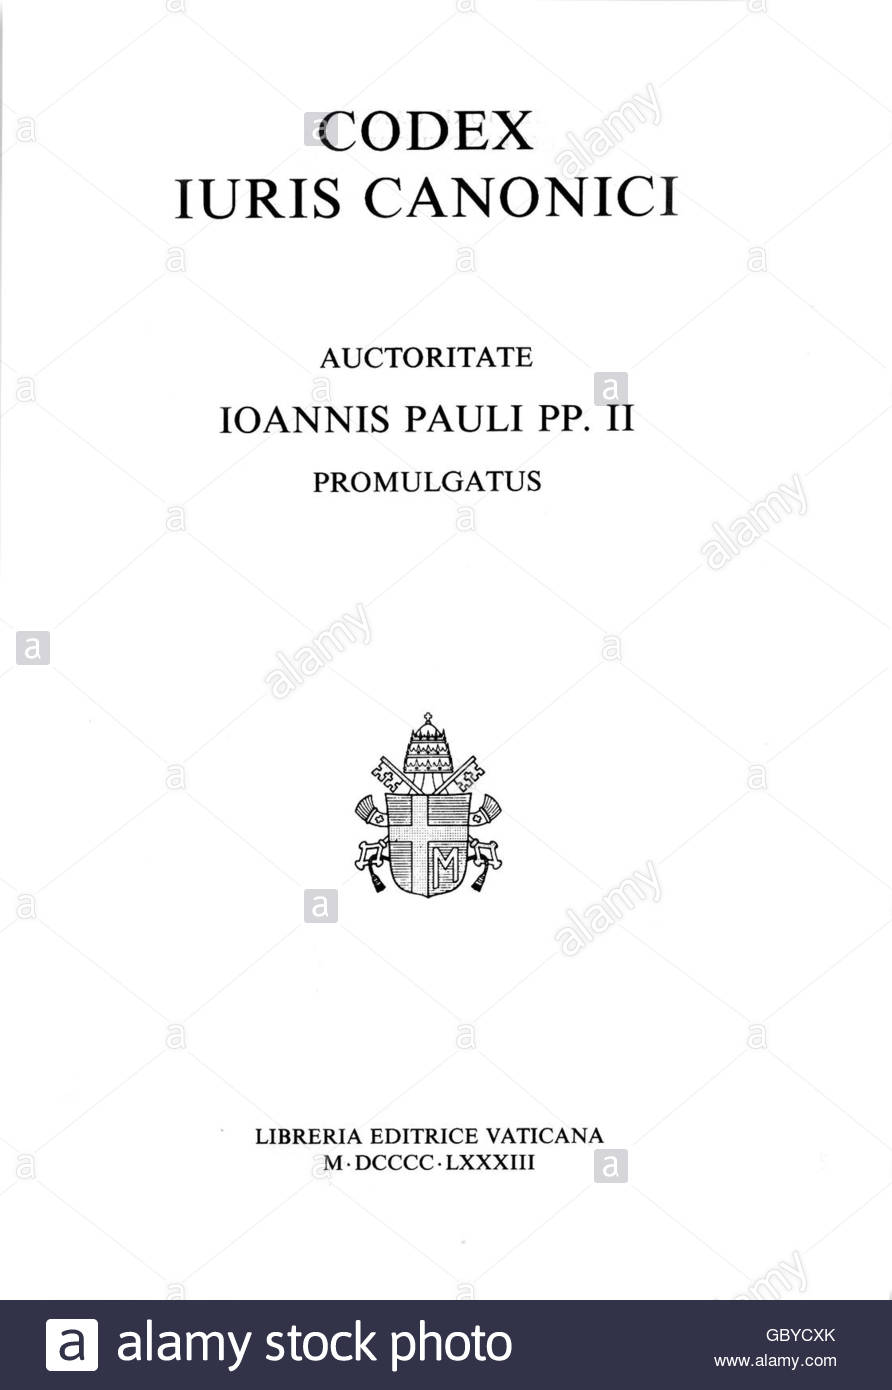 justice, laws, canon law, 'Codey iuris canonici', canonical law, authorized by pope John Paul II, Libreria - Stock Image